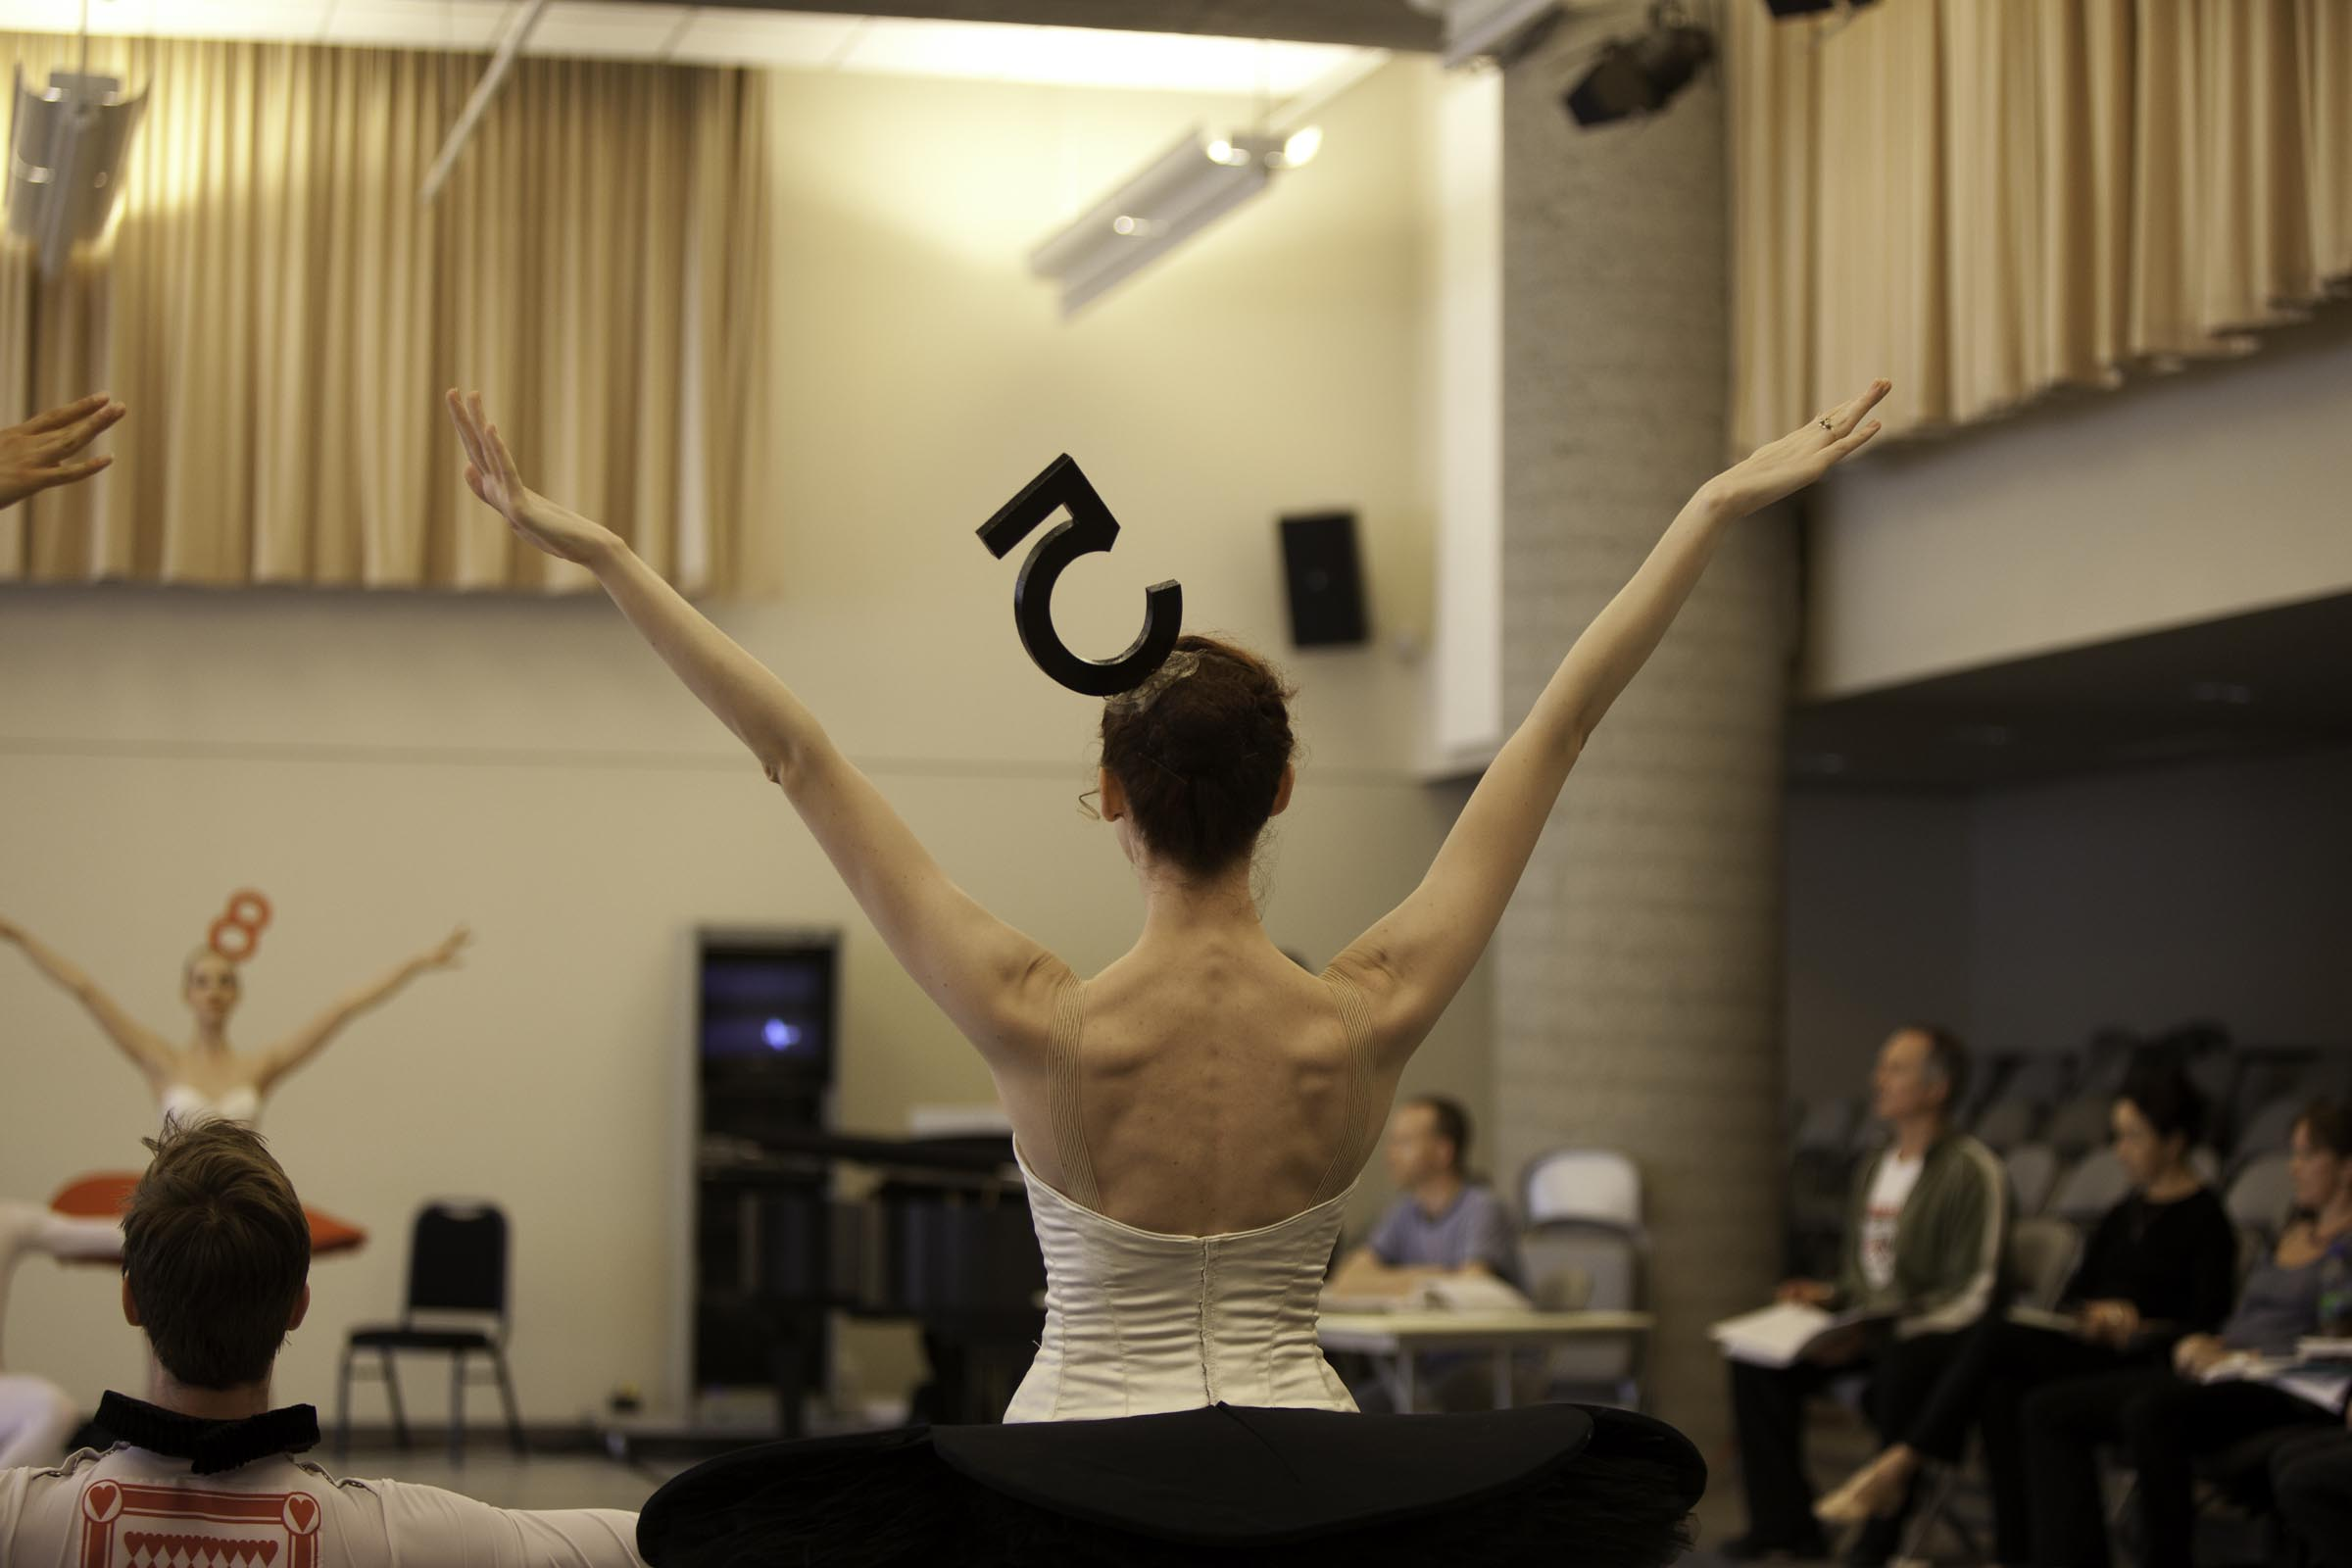 dancer raises her arms in rehearsal with her back to the camera